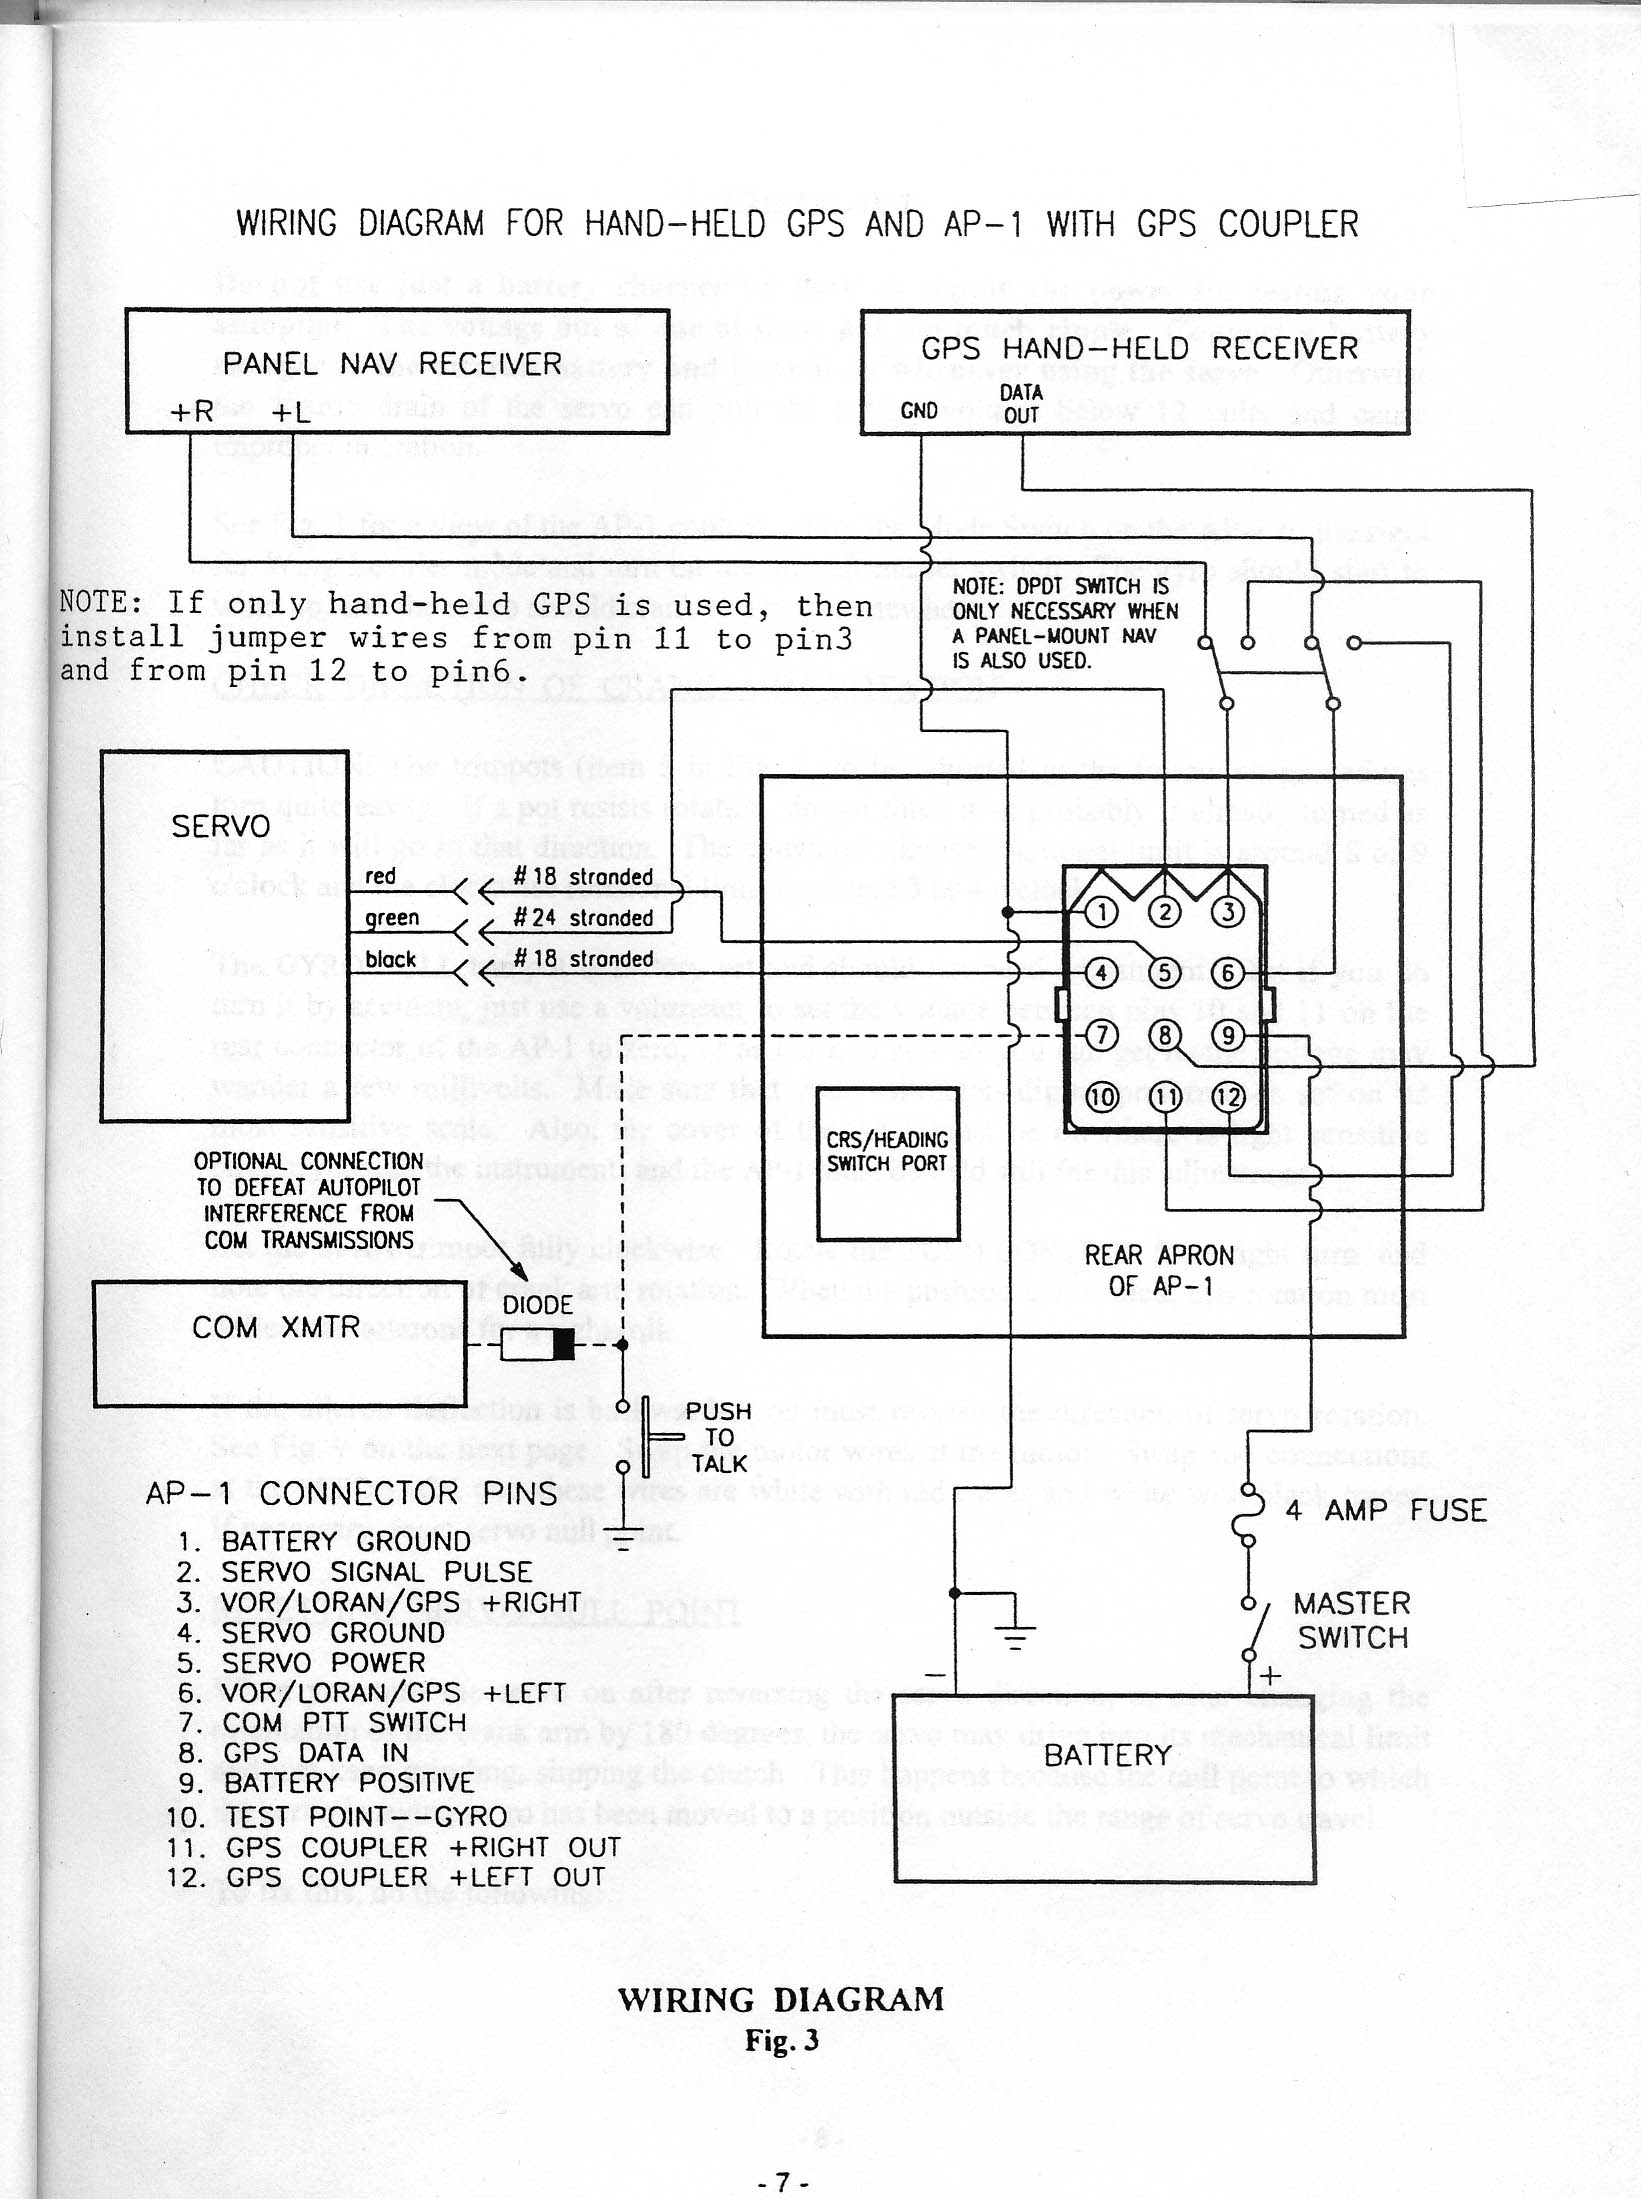 diagram king ky 92 wiring diagram automotive wiring diagrams \u2022 wiring king ka 134 audio panel wiring diagram at bayanpartner.co